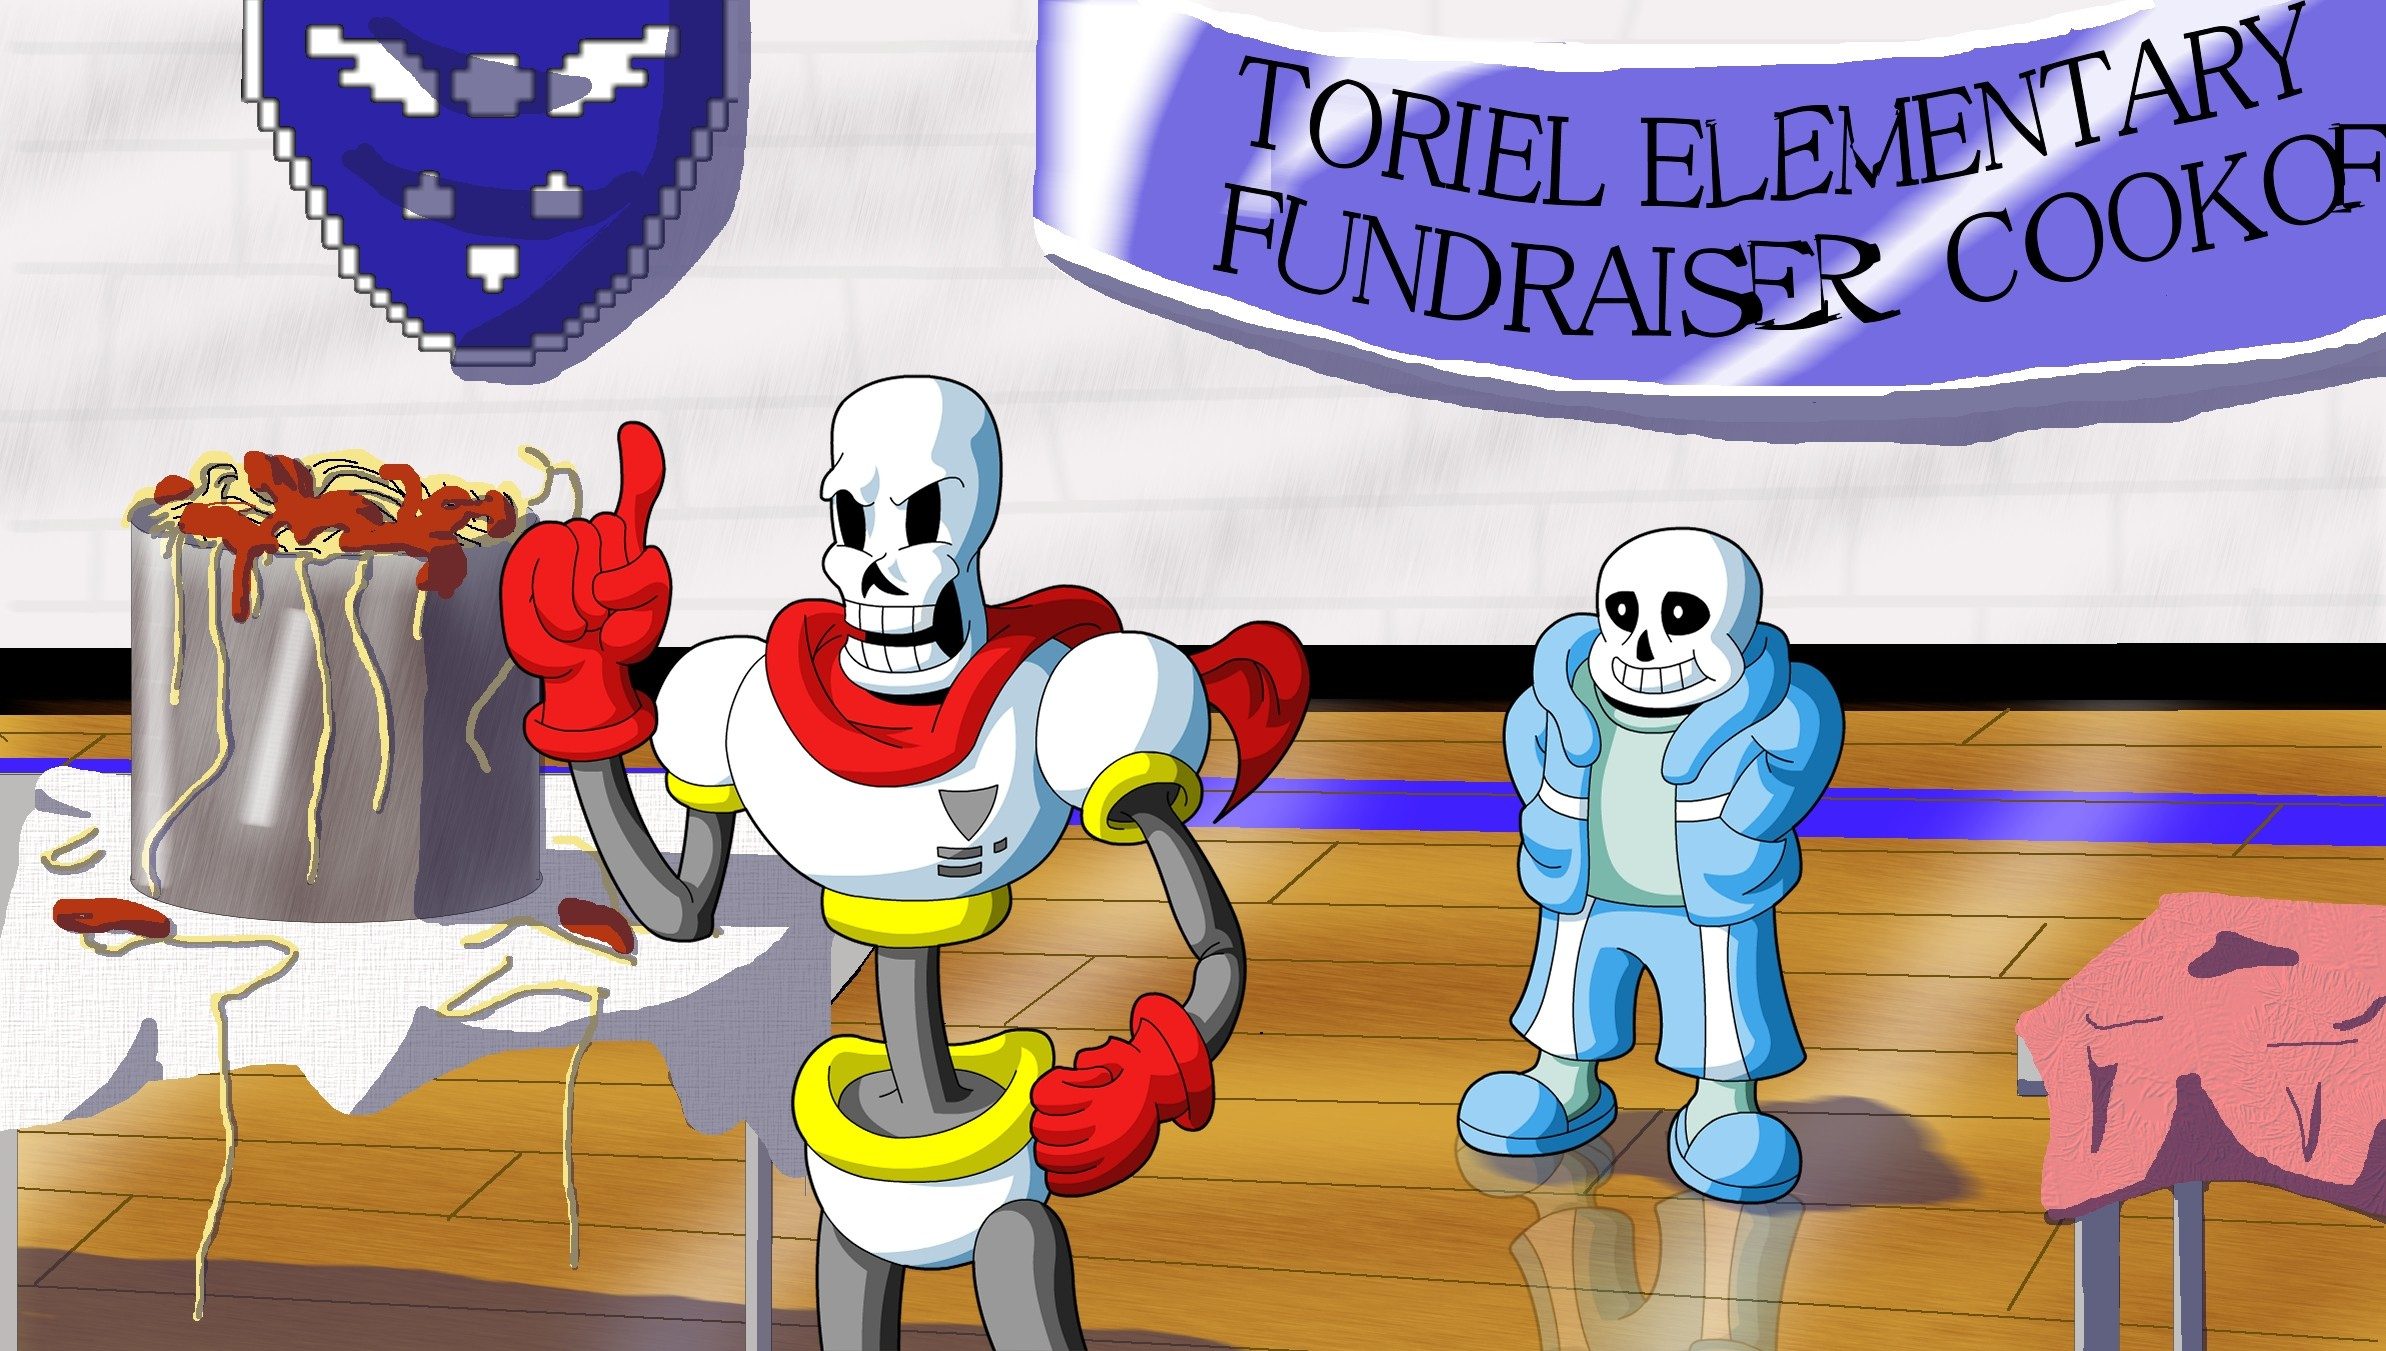 Sans and Papyrus: Helping Out…? by Clovis15 on DeviantArt